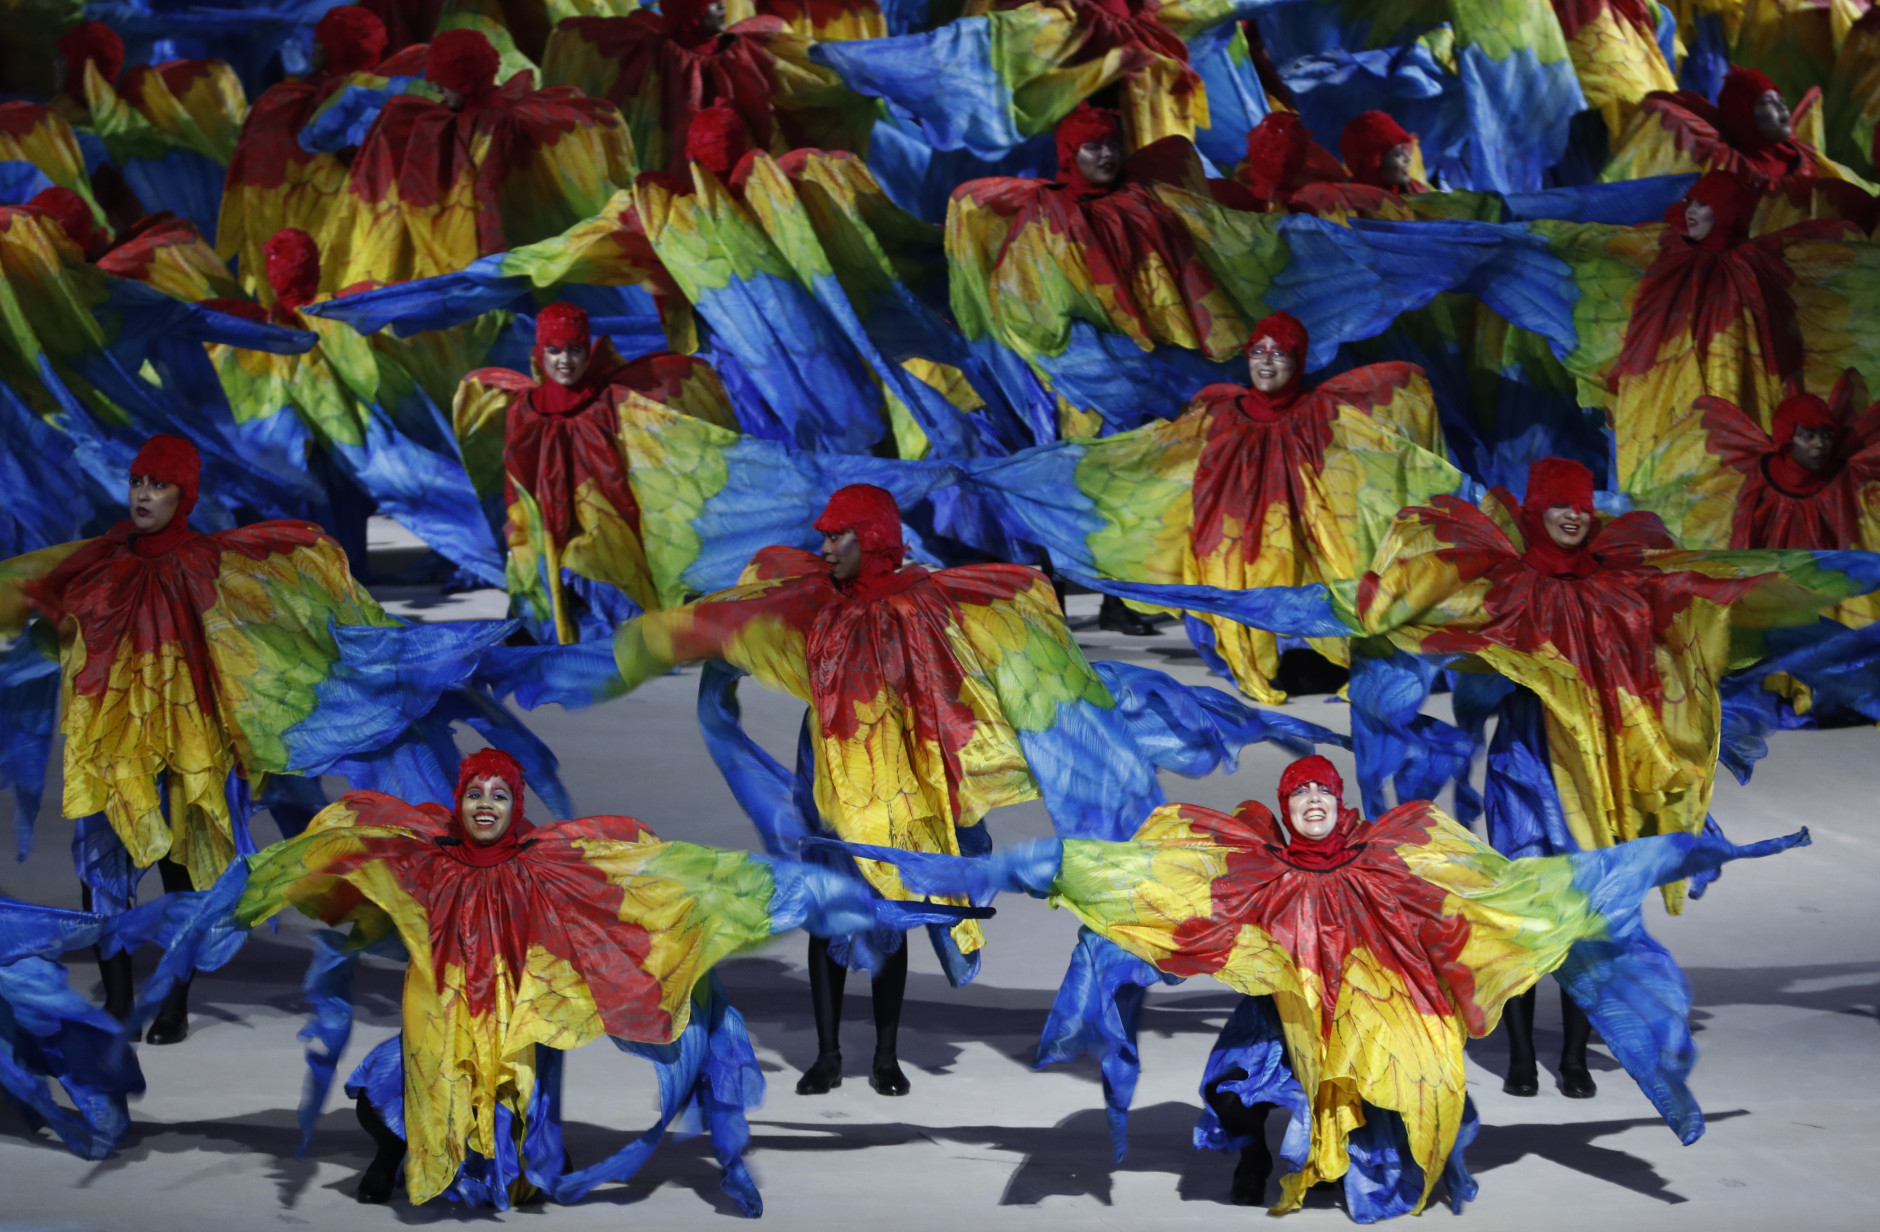 Dancers perform during the closing ceremony for the Summer Olympics in Rio de Janeiro, Brazil, Sunday, Aug. 21, 2016. (AP Photo/Vincent Thian)